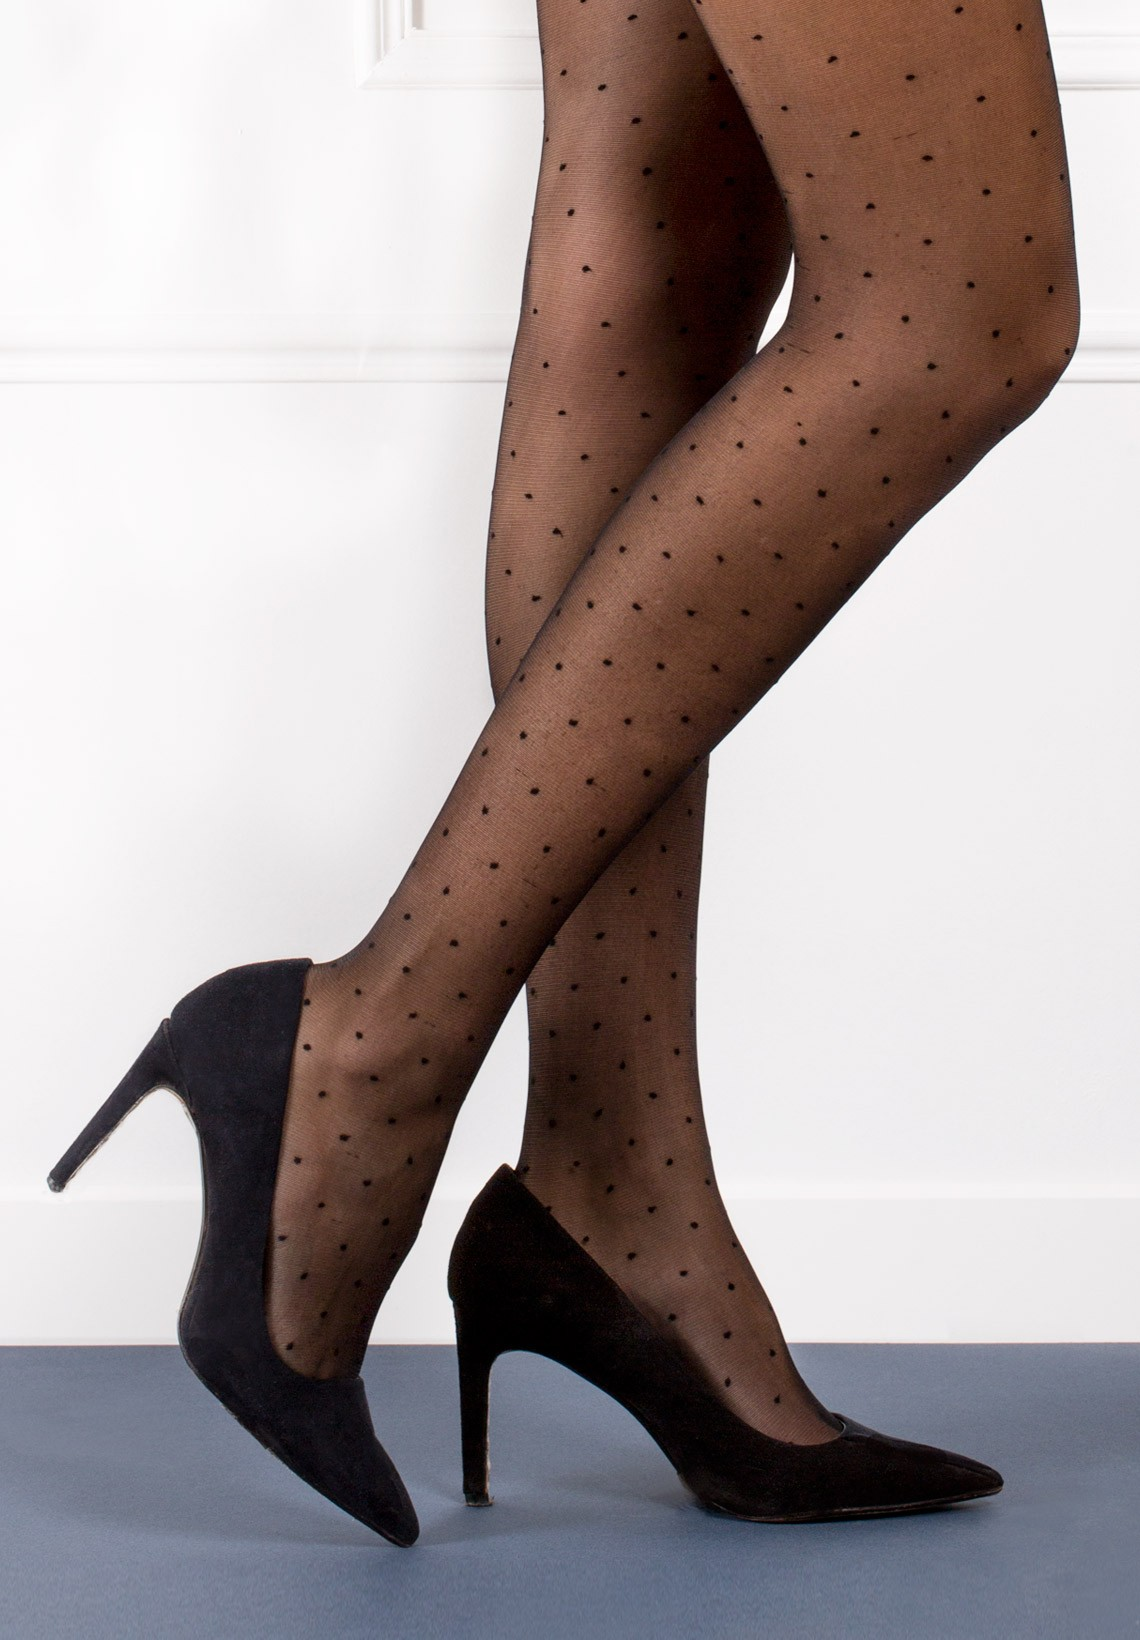 RelaxsanShop: Compression stockings, support hosiery and products for the well-being of the body.